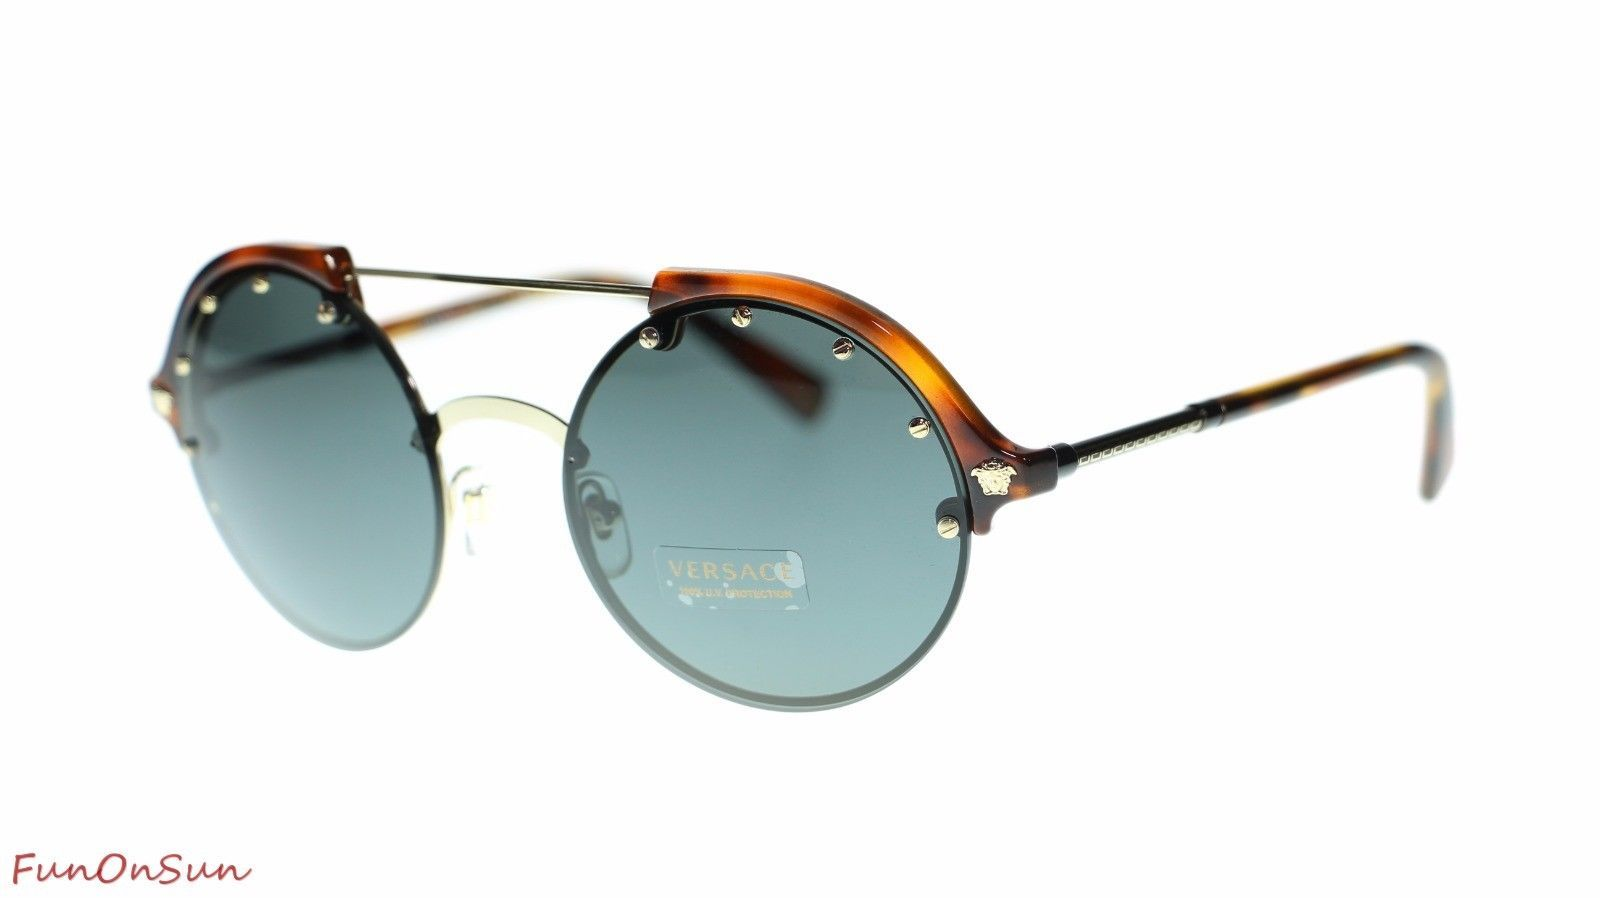 142b98a1300 Versace Round Women Sunglasses VE4337 260 87 and 50 similar items